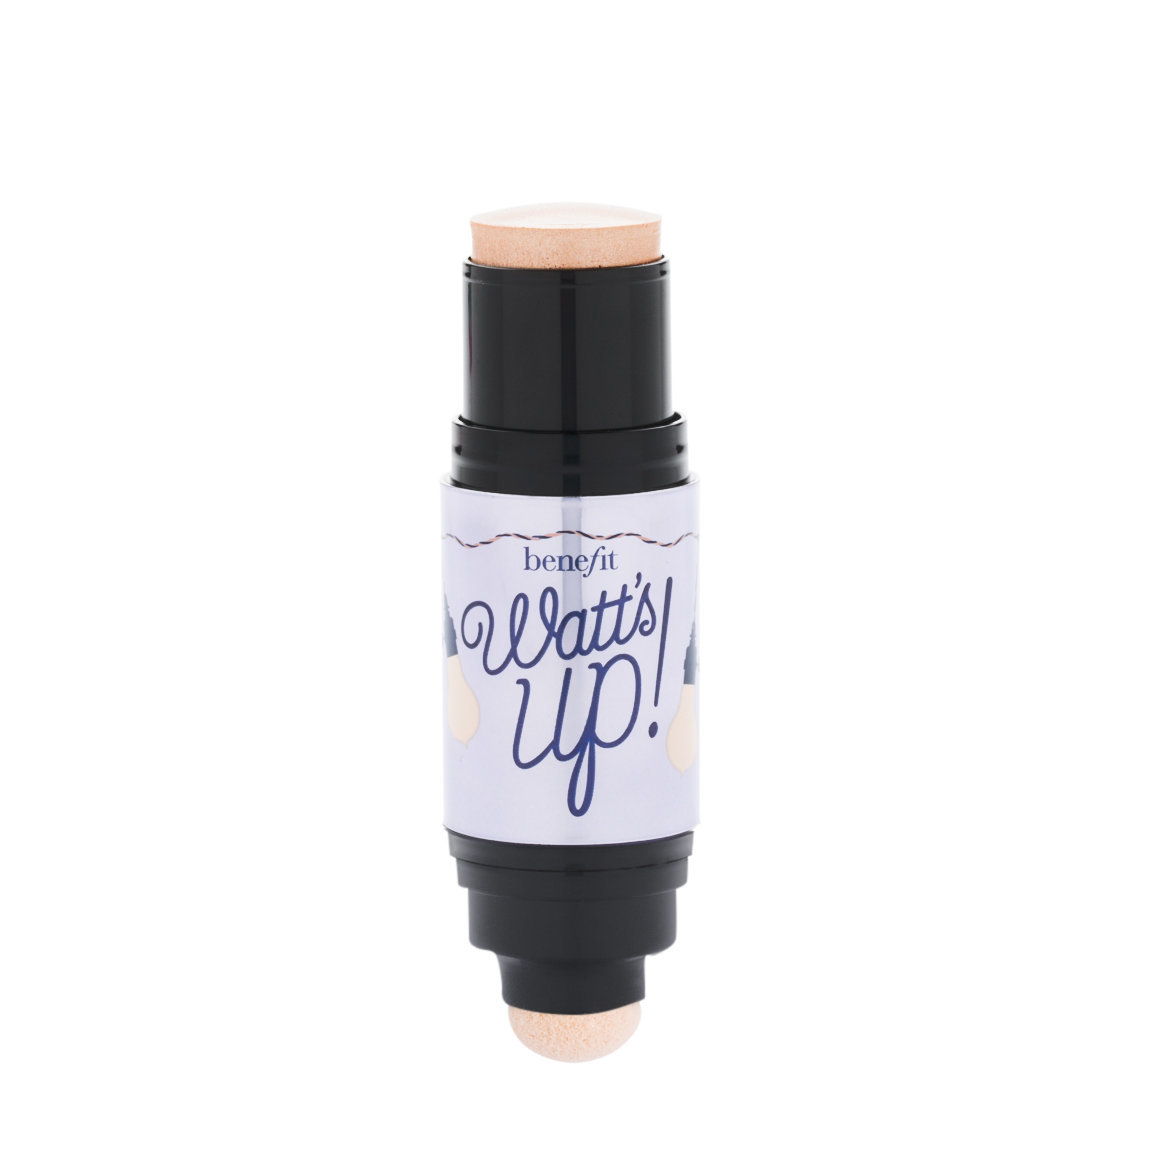 Benefit Cosmetics Watt's Up! Cream Highlighter product smear.